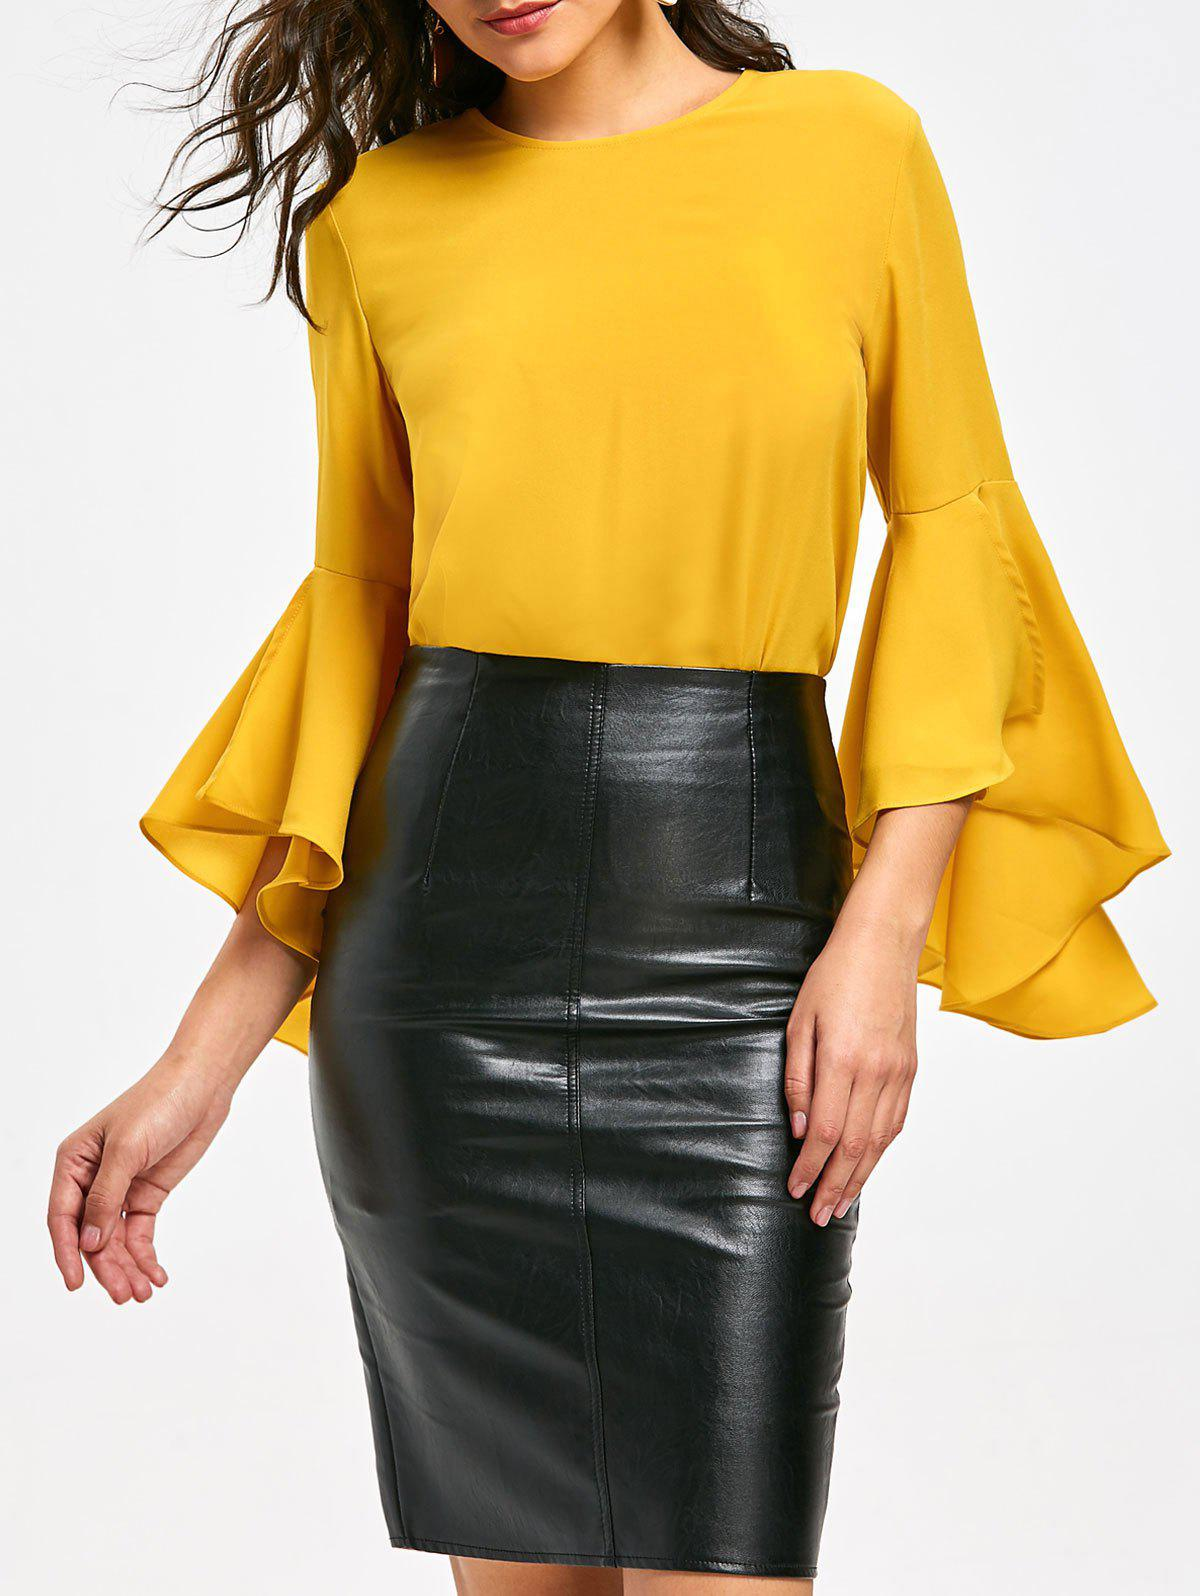 Flare Sleeve Top with FlounceWOMEN<br><br>Size: L; Color: YELLOW; Style: Casual; Material: Polyester; Shirt Length: Long; Sleeve Length: Full; Sleeve Type: Flare Sleeve; Collar: Round Neck; Pattern Type: Solid; Embellishment: Flounce; Season: Fall,Spring; Weight: 0.3500kg; Package Contents: 1 x Blouse;